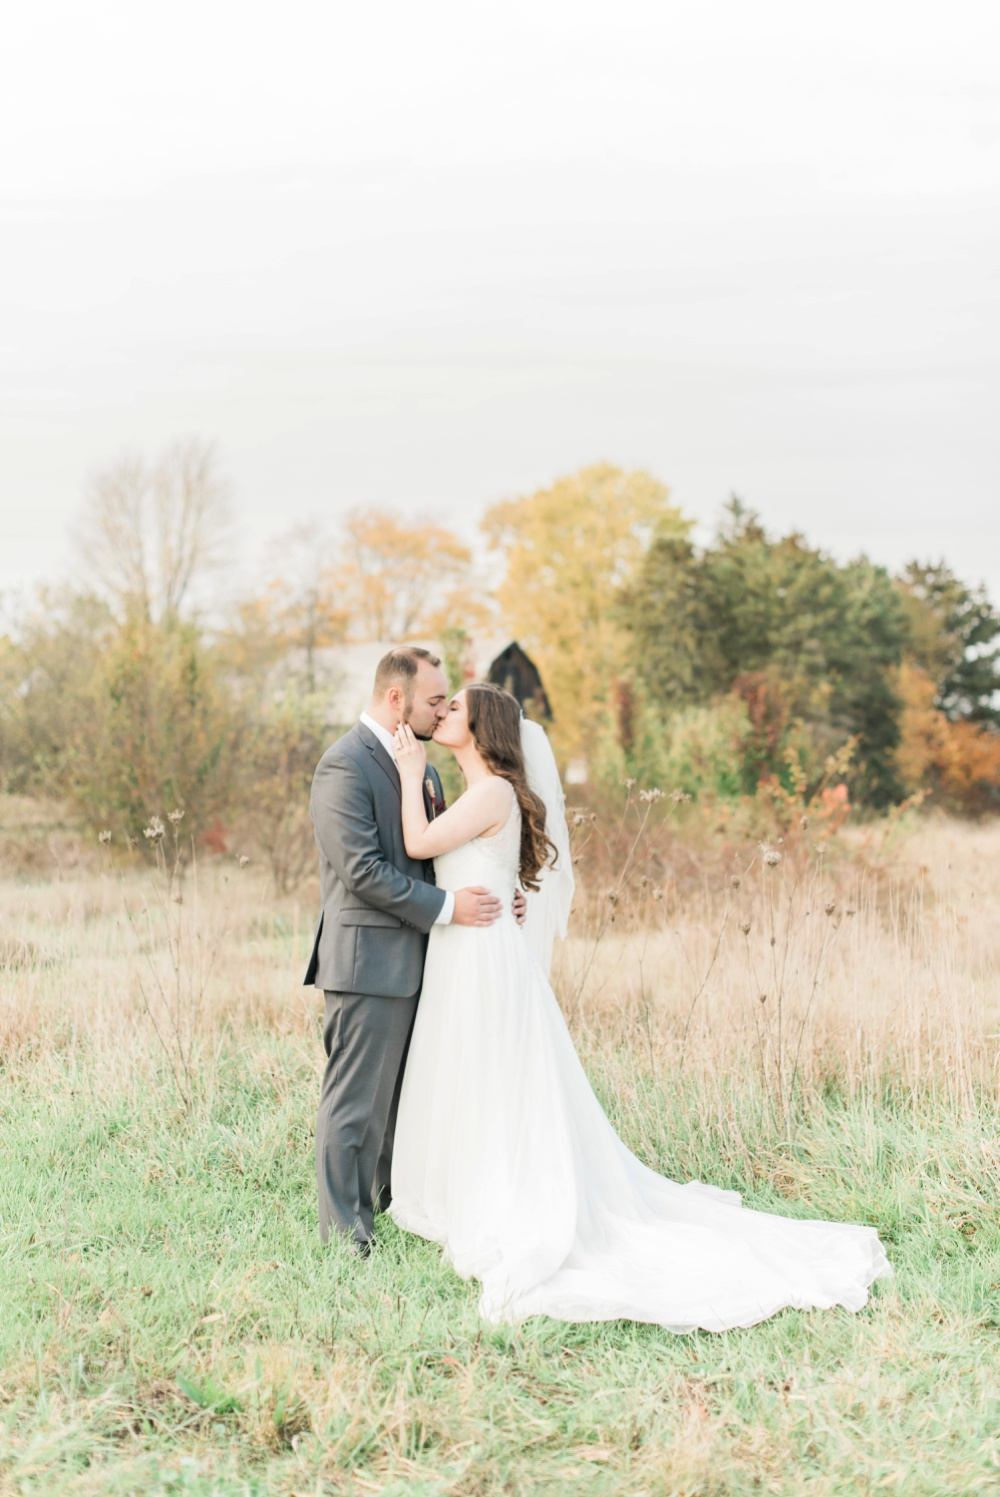 ricciardis-tree-farm-wedding-wadsworth-ohio-lauren-ryan_0112.jpg